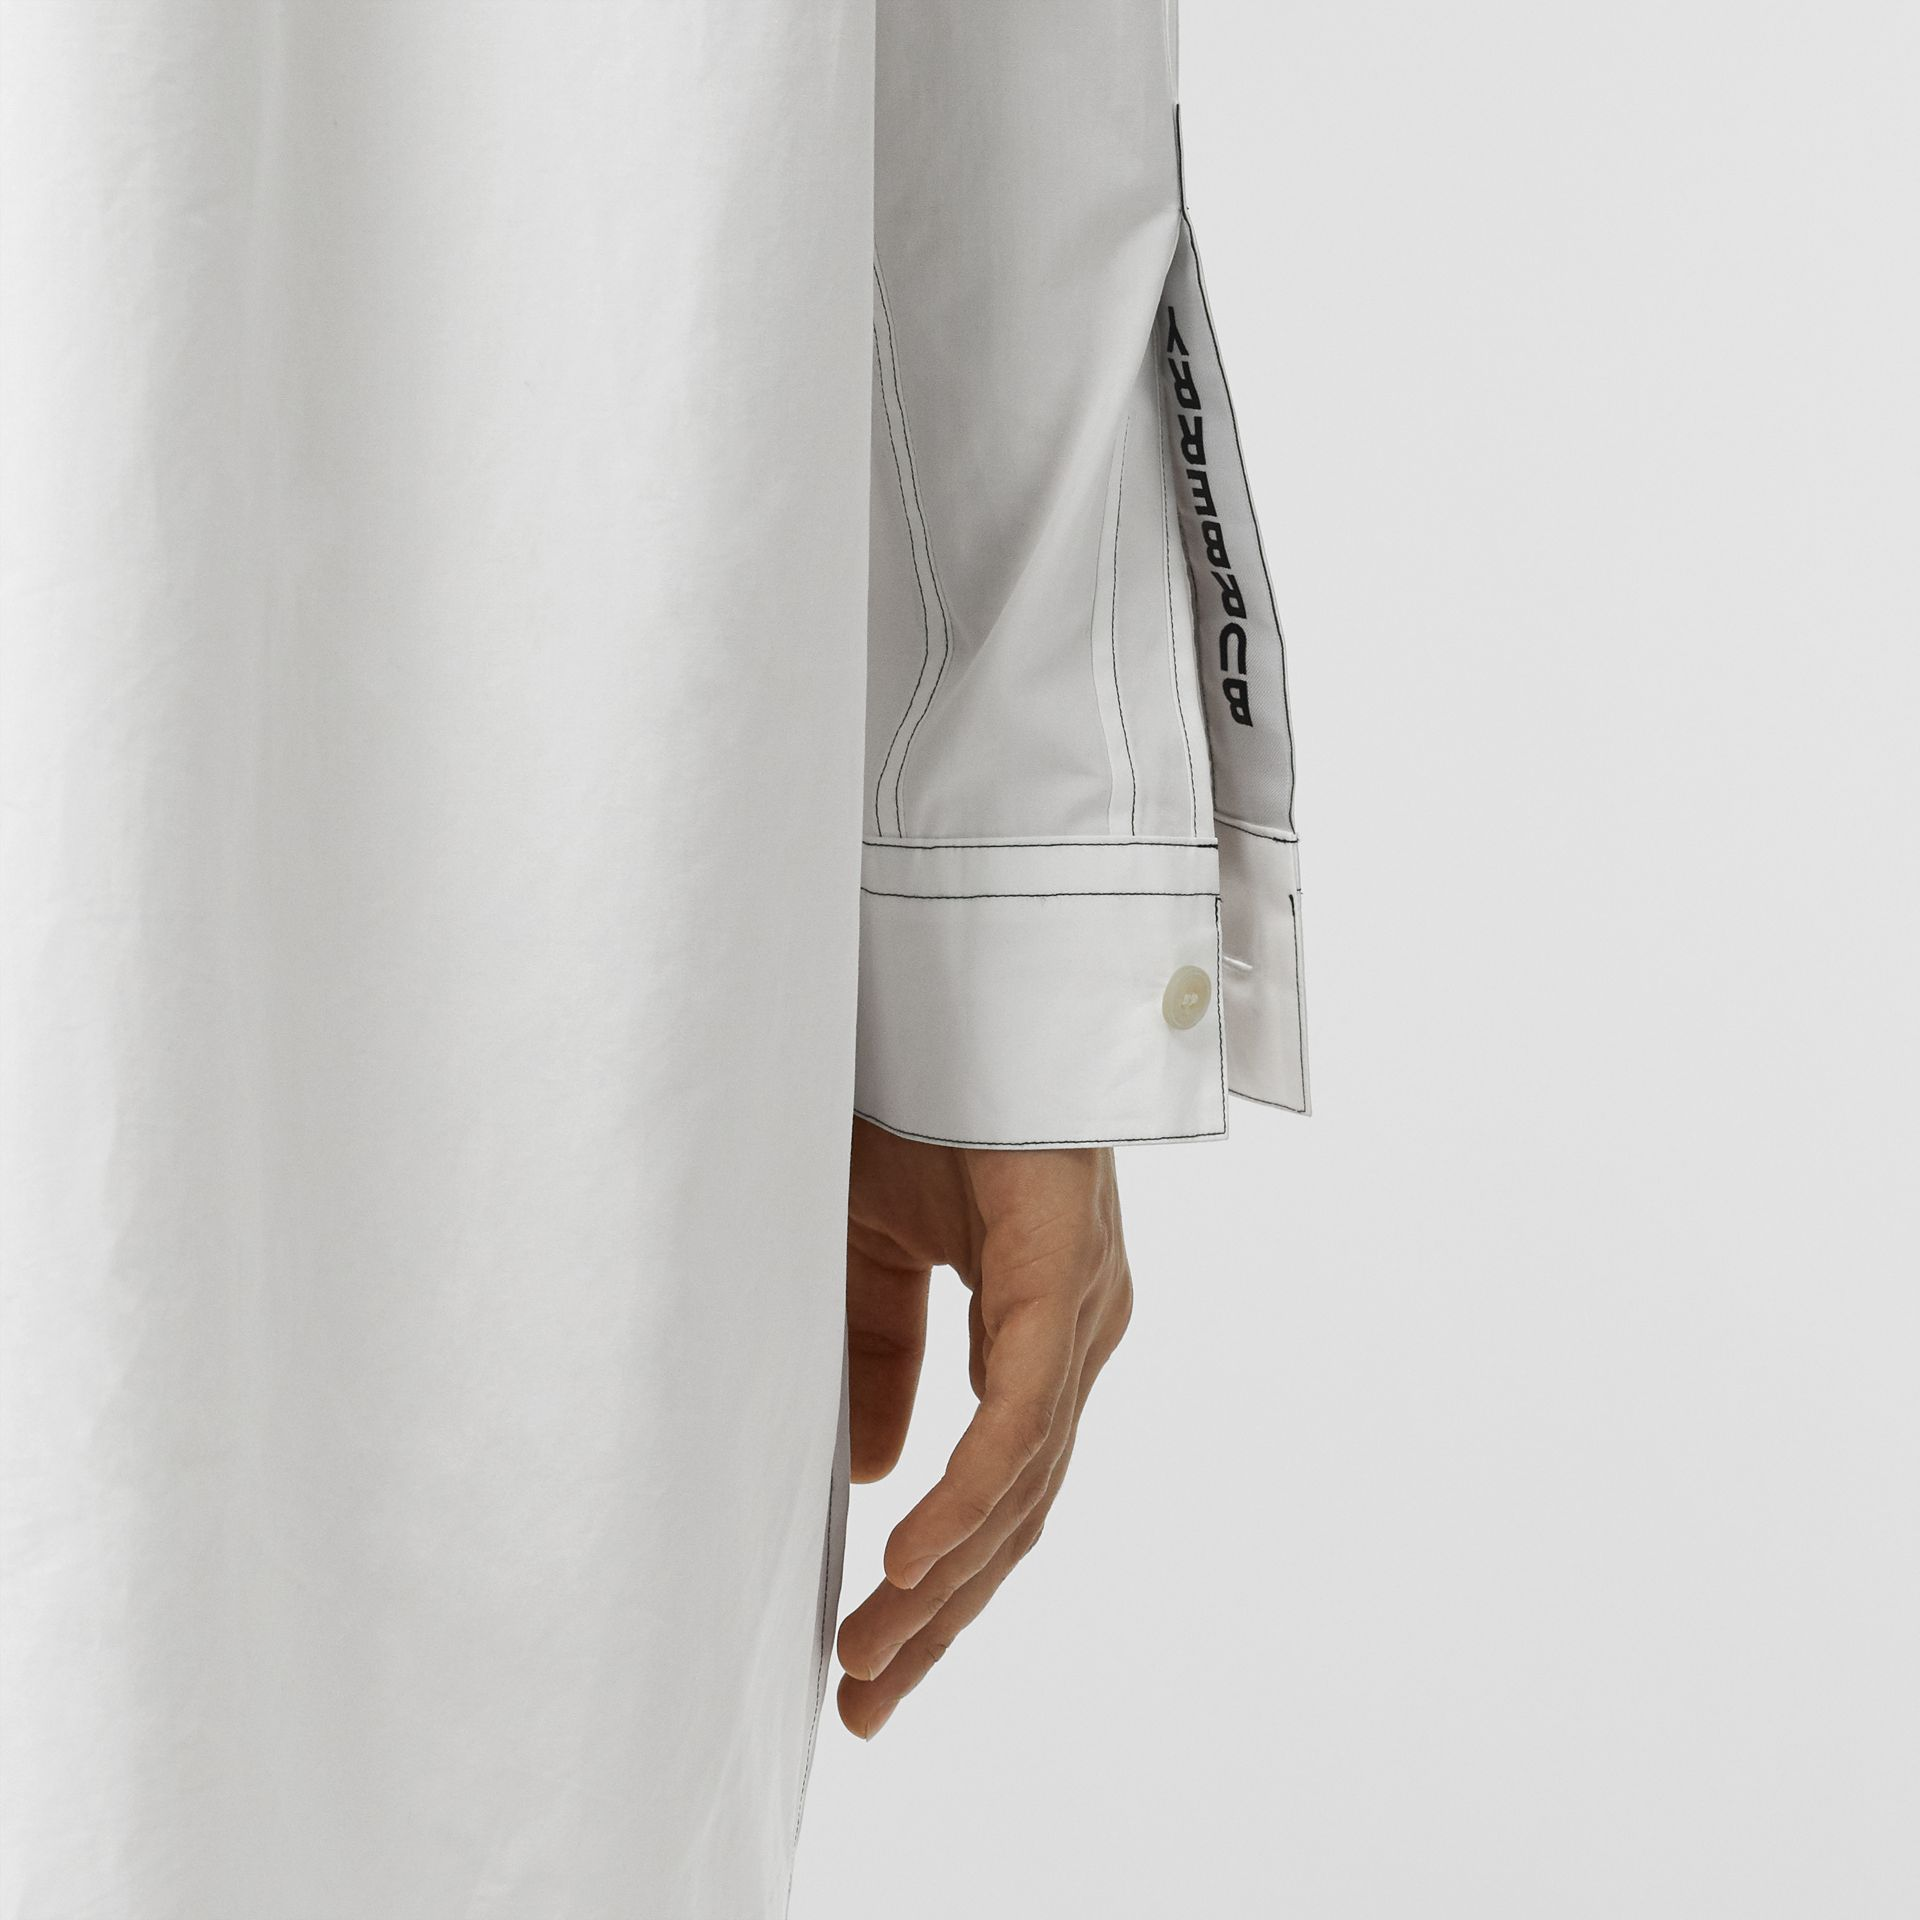 Topstitch Detail Cotton Poplin Shirt Dress in White - Women | Burberry - gallery image 5